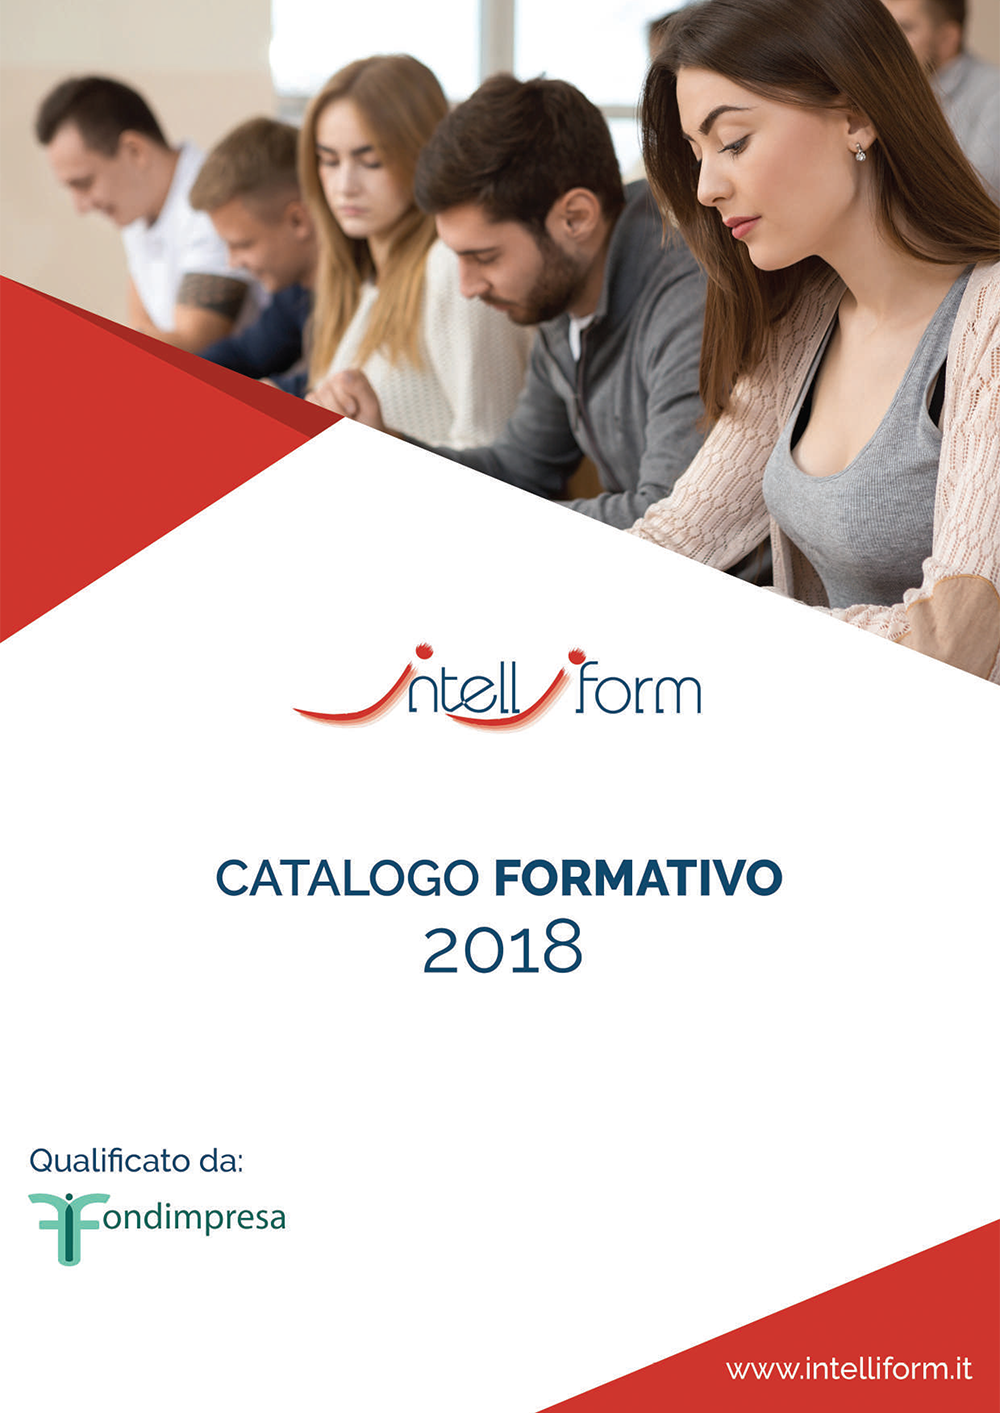 Catalogo Fondimpresa 2018